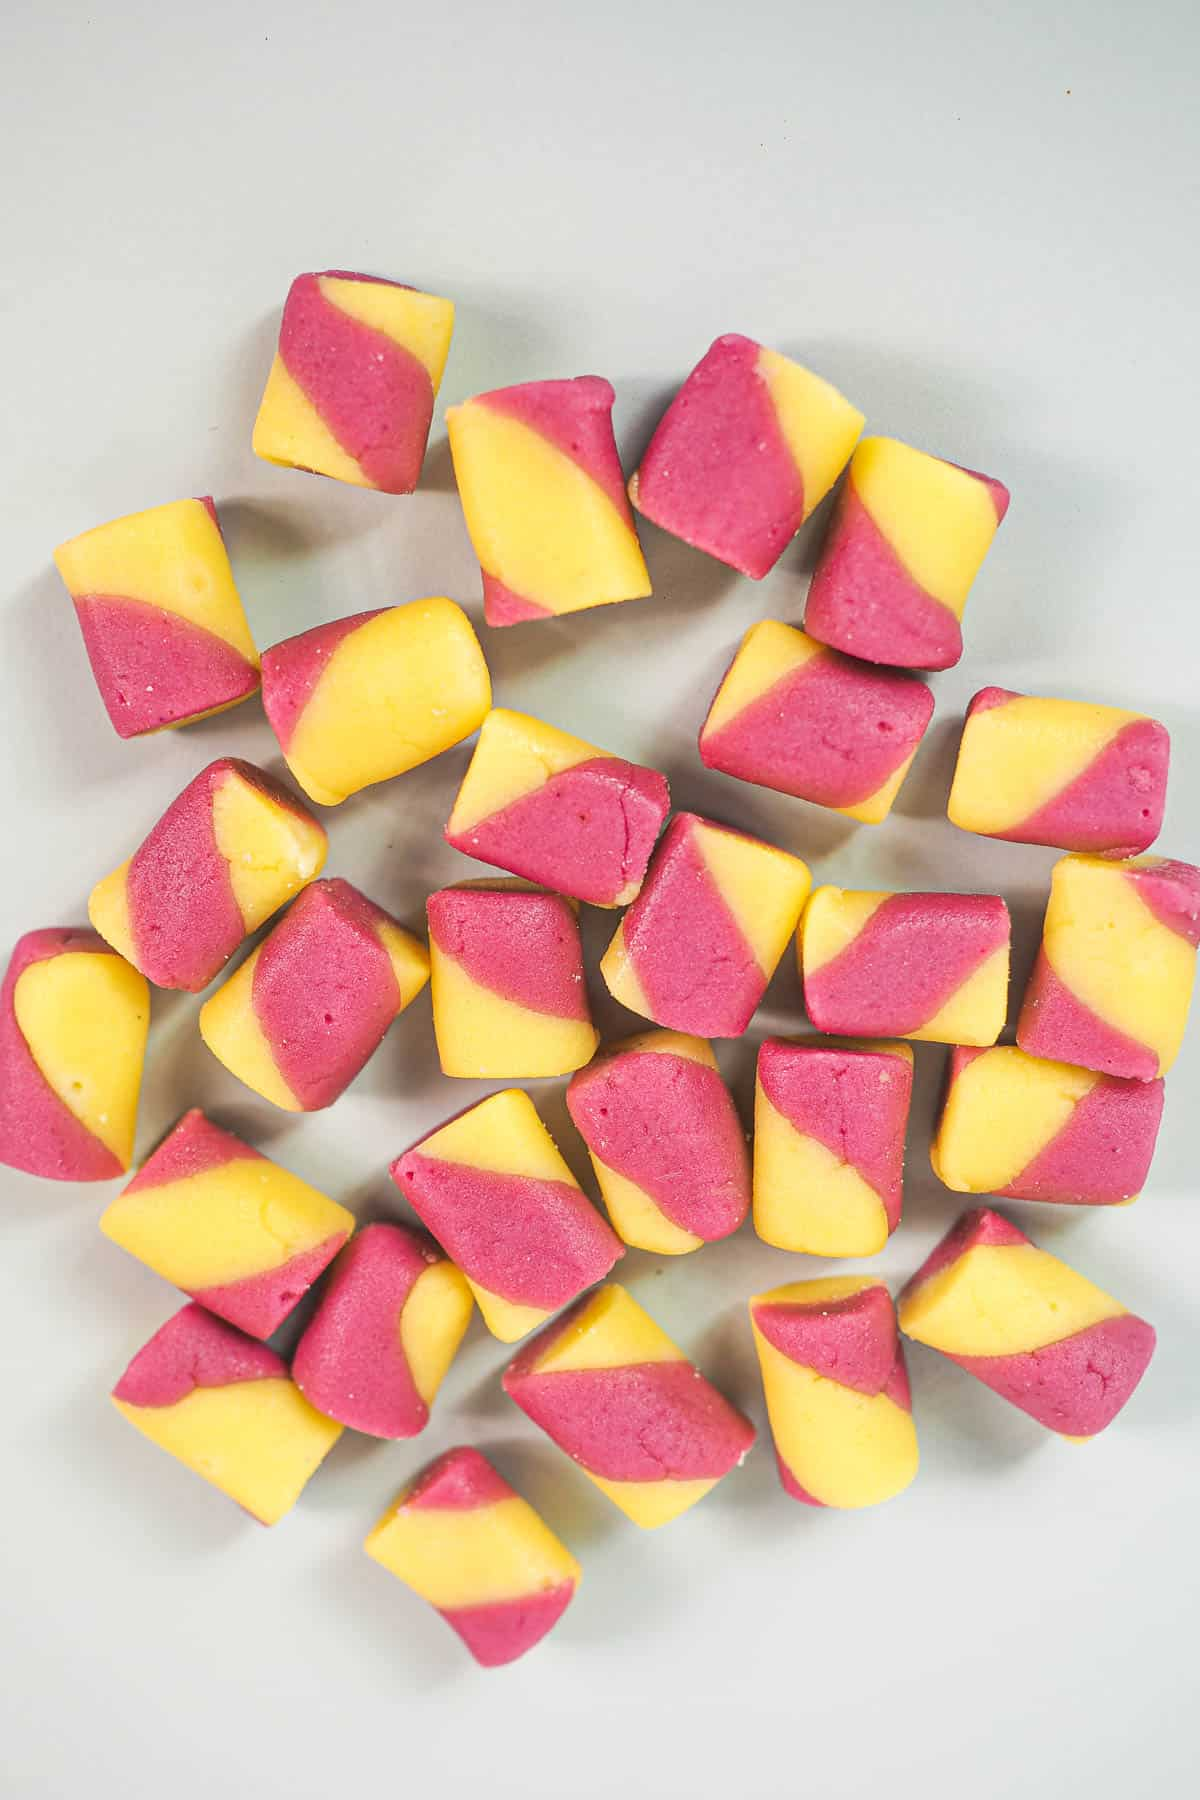 Pink and yellow buttermints